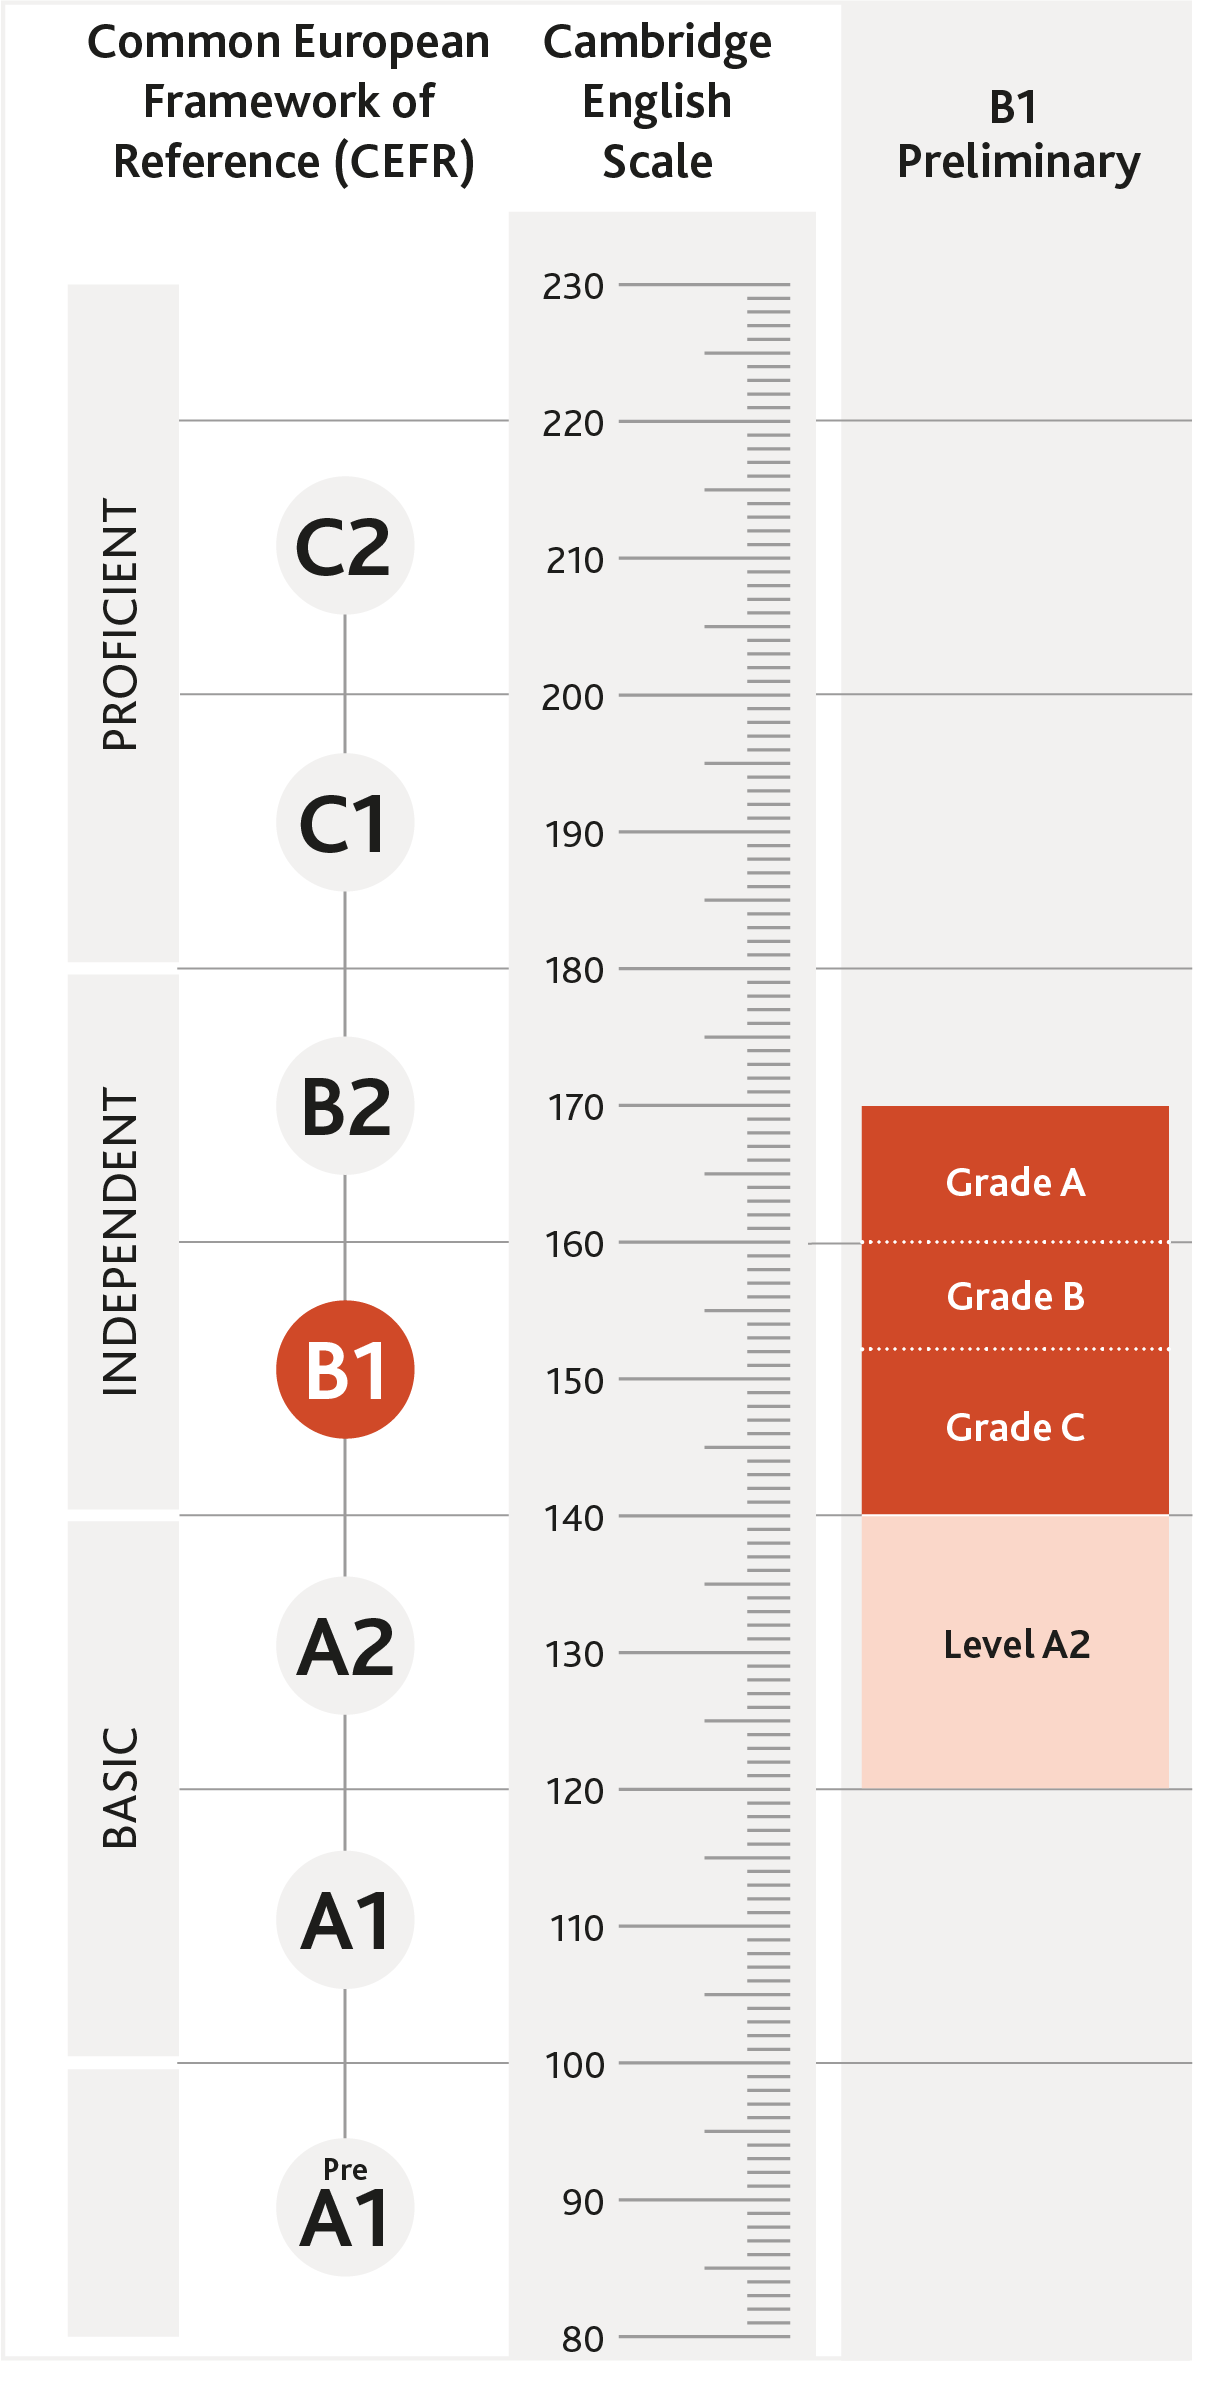 Diagram of where B1 Preliminary is aligned on the CEFR and the Cambridge English Scale